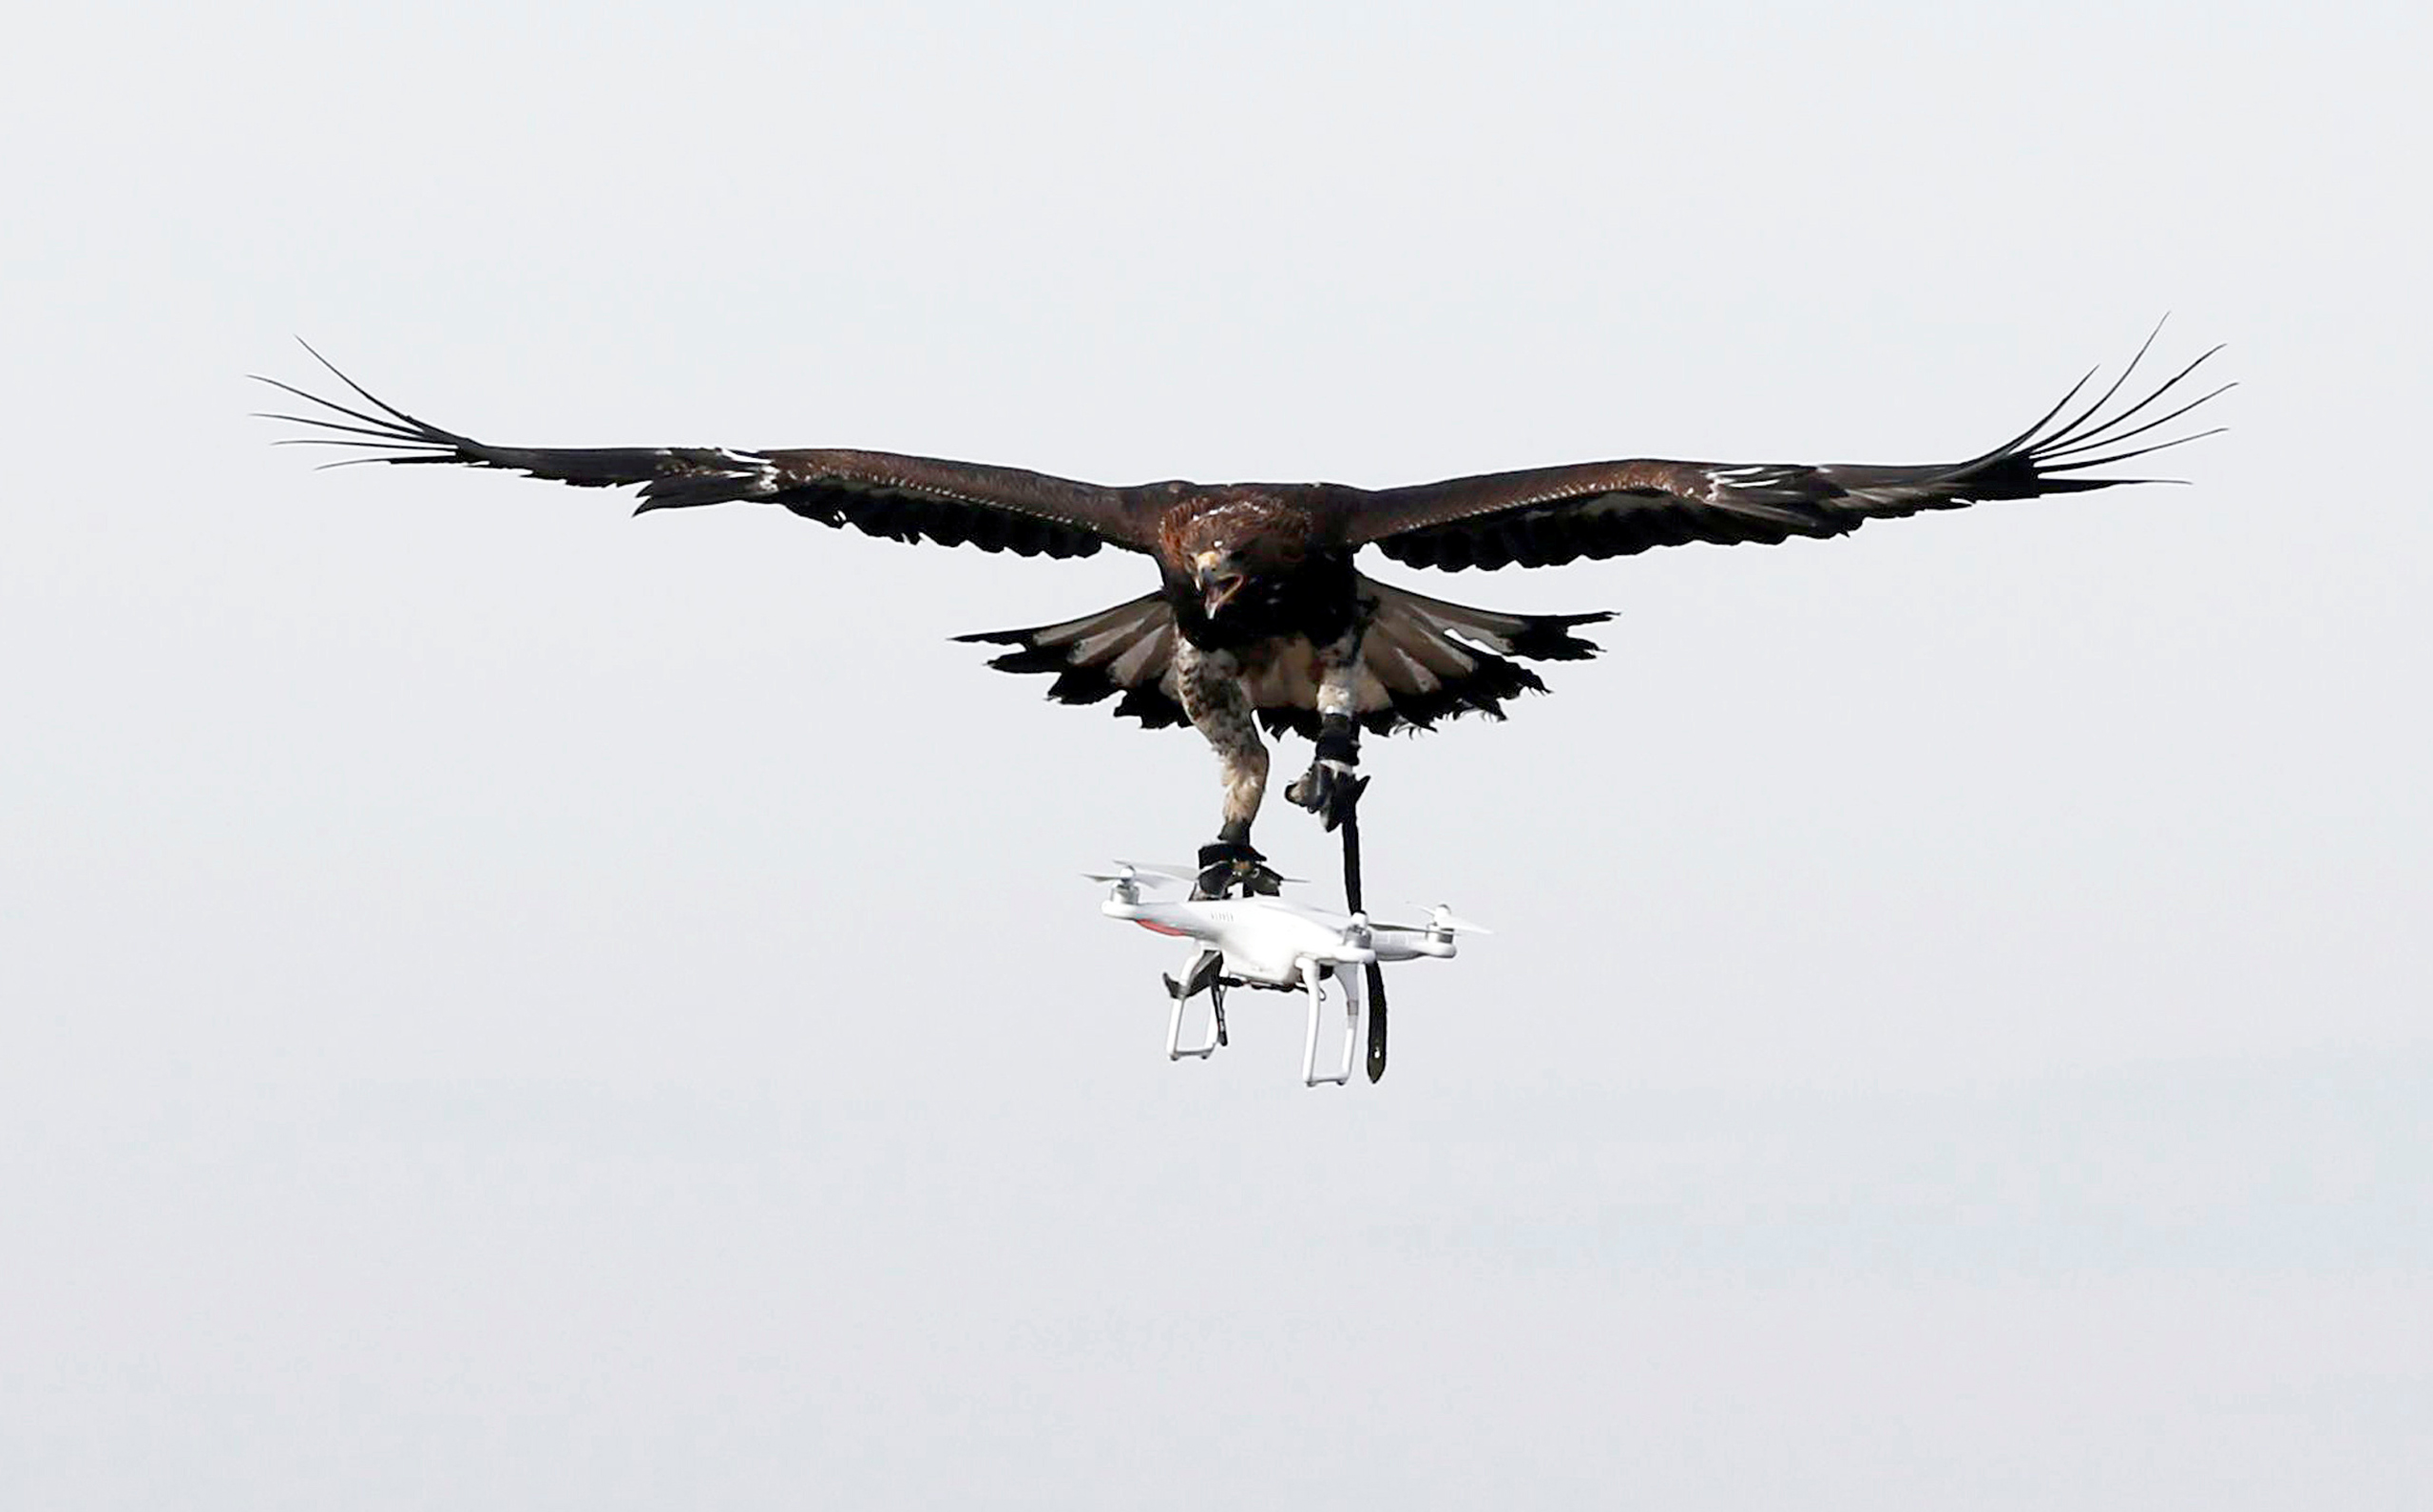 A golden eagle carries a flying drone away during a military training exercise at Mont-de-Marsan French Air Force base in Southwestern France on Feb. 10, 2017.